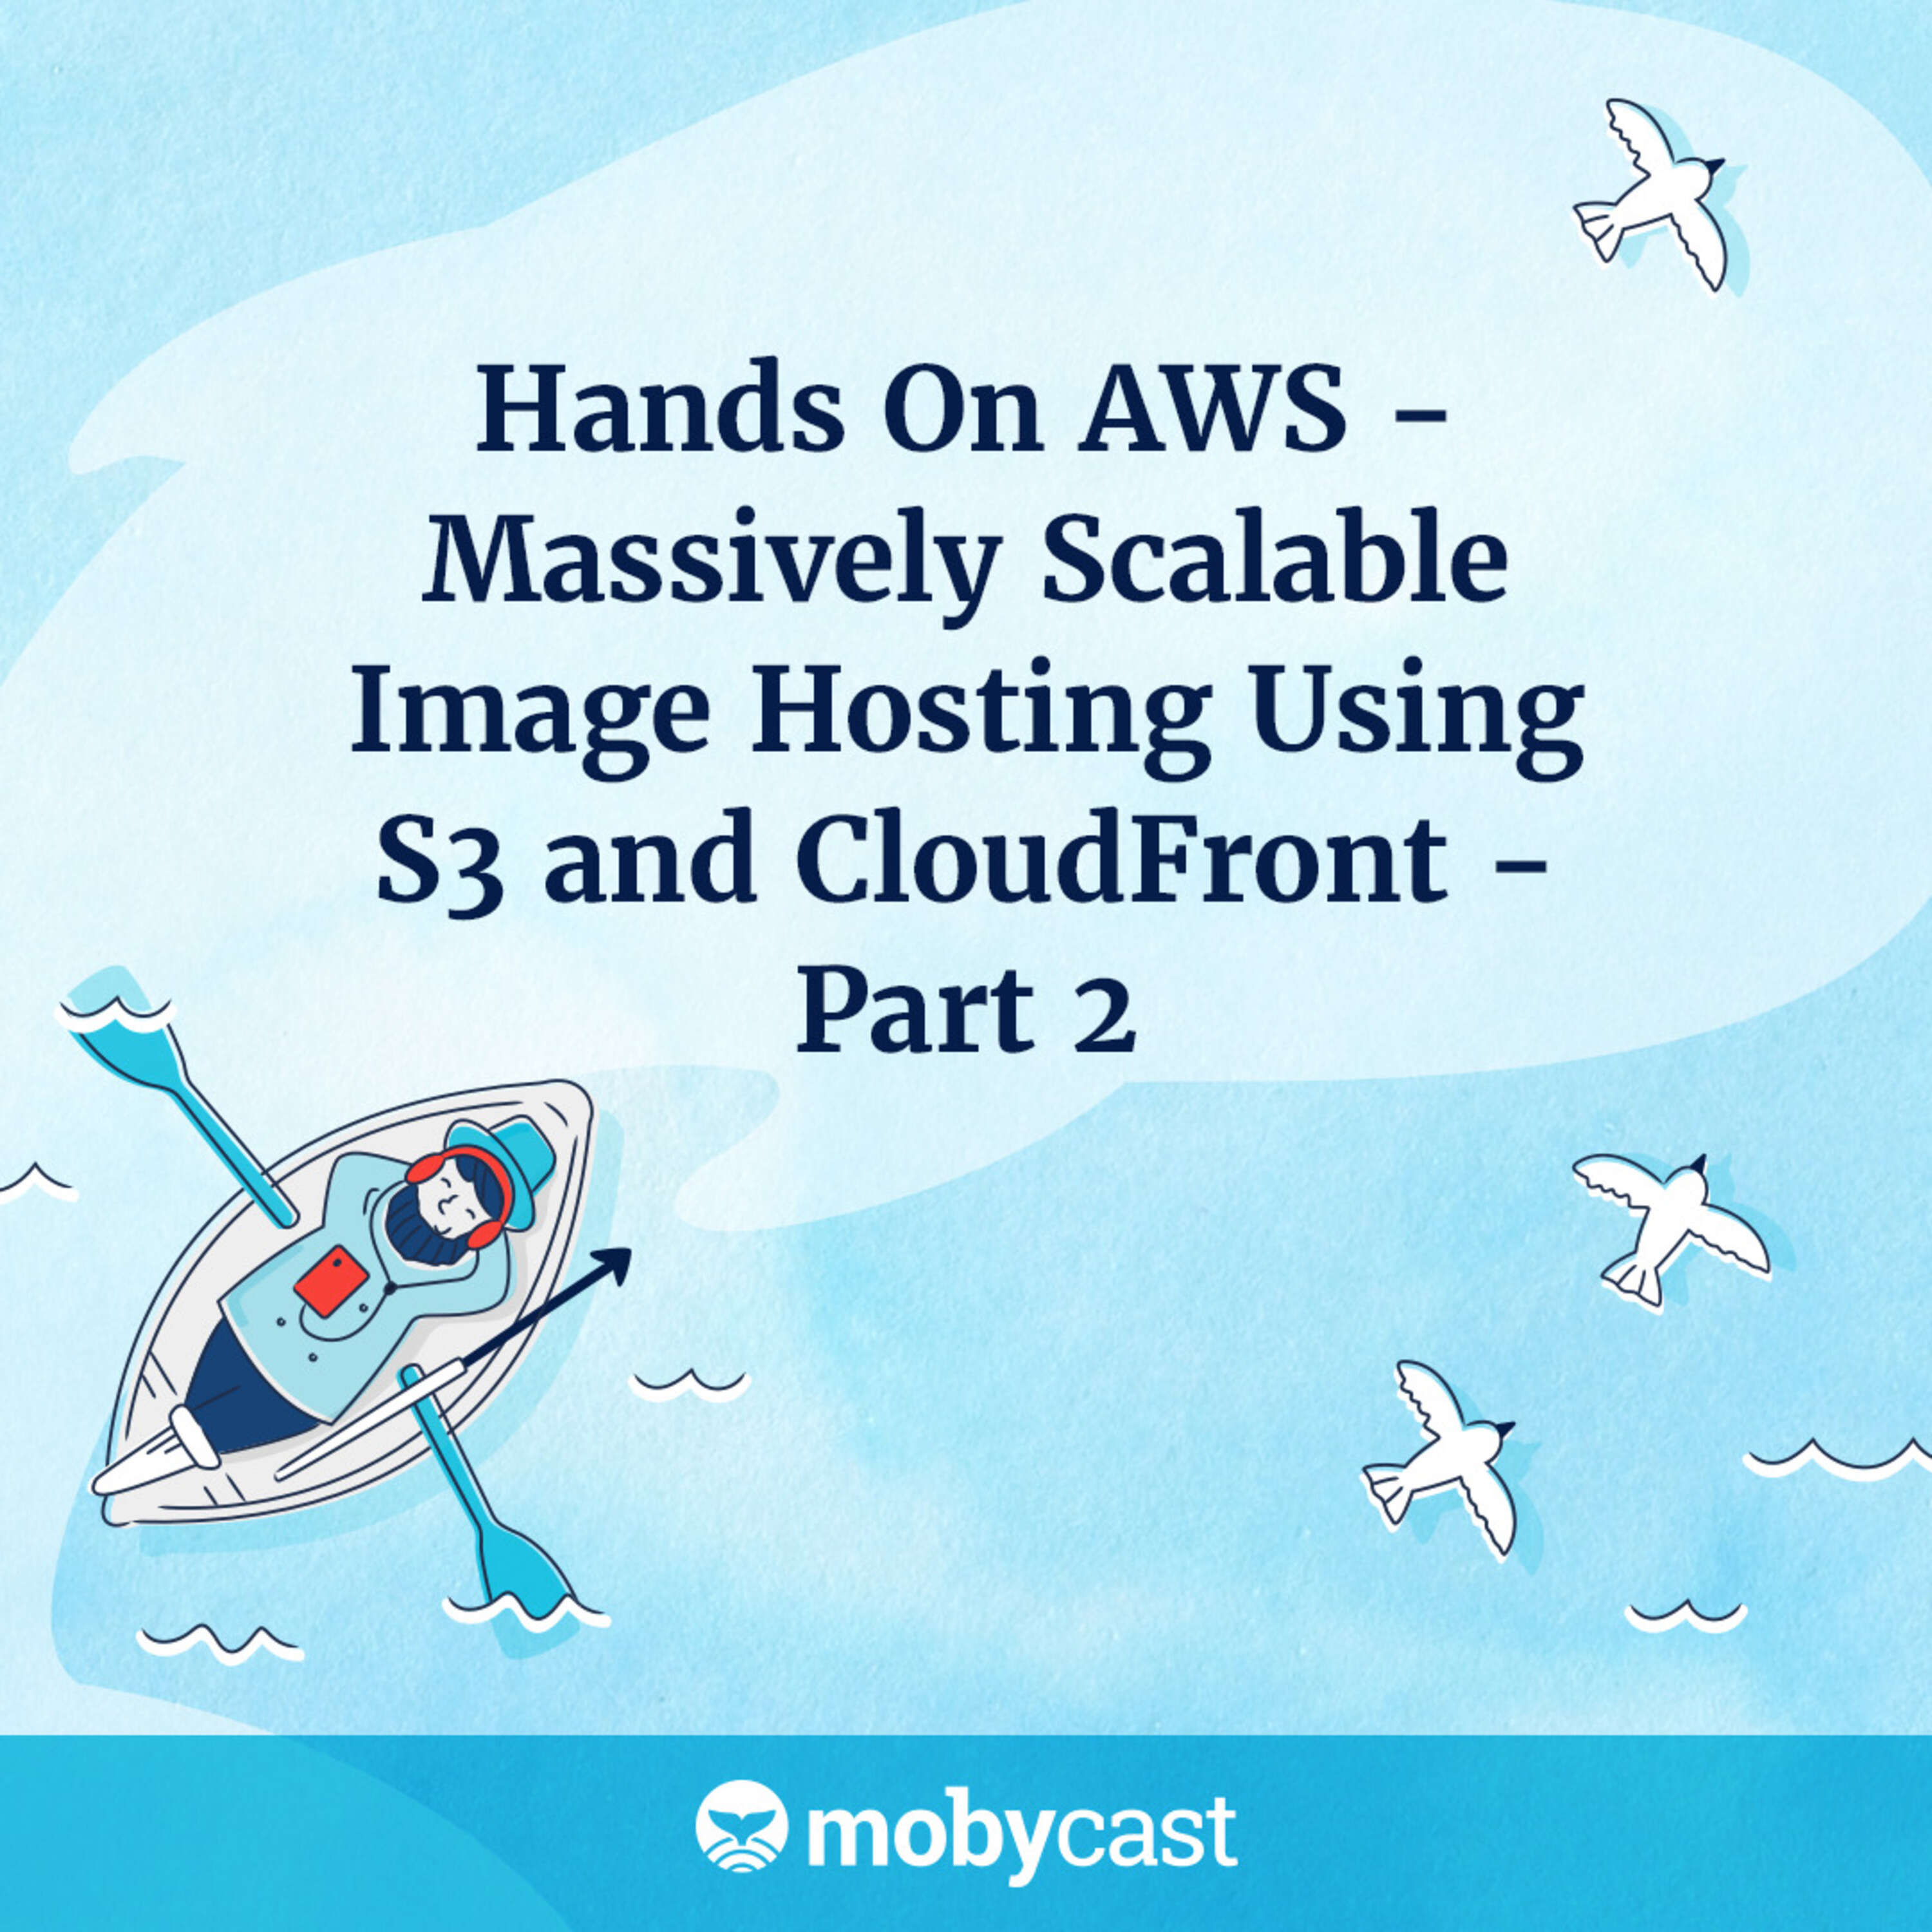 Hands On AWS - Massively Scalable Image Hosting Using S3 and CloudFront - Part 2